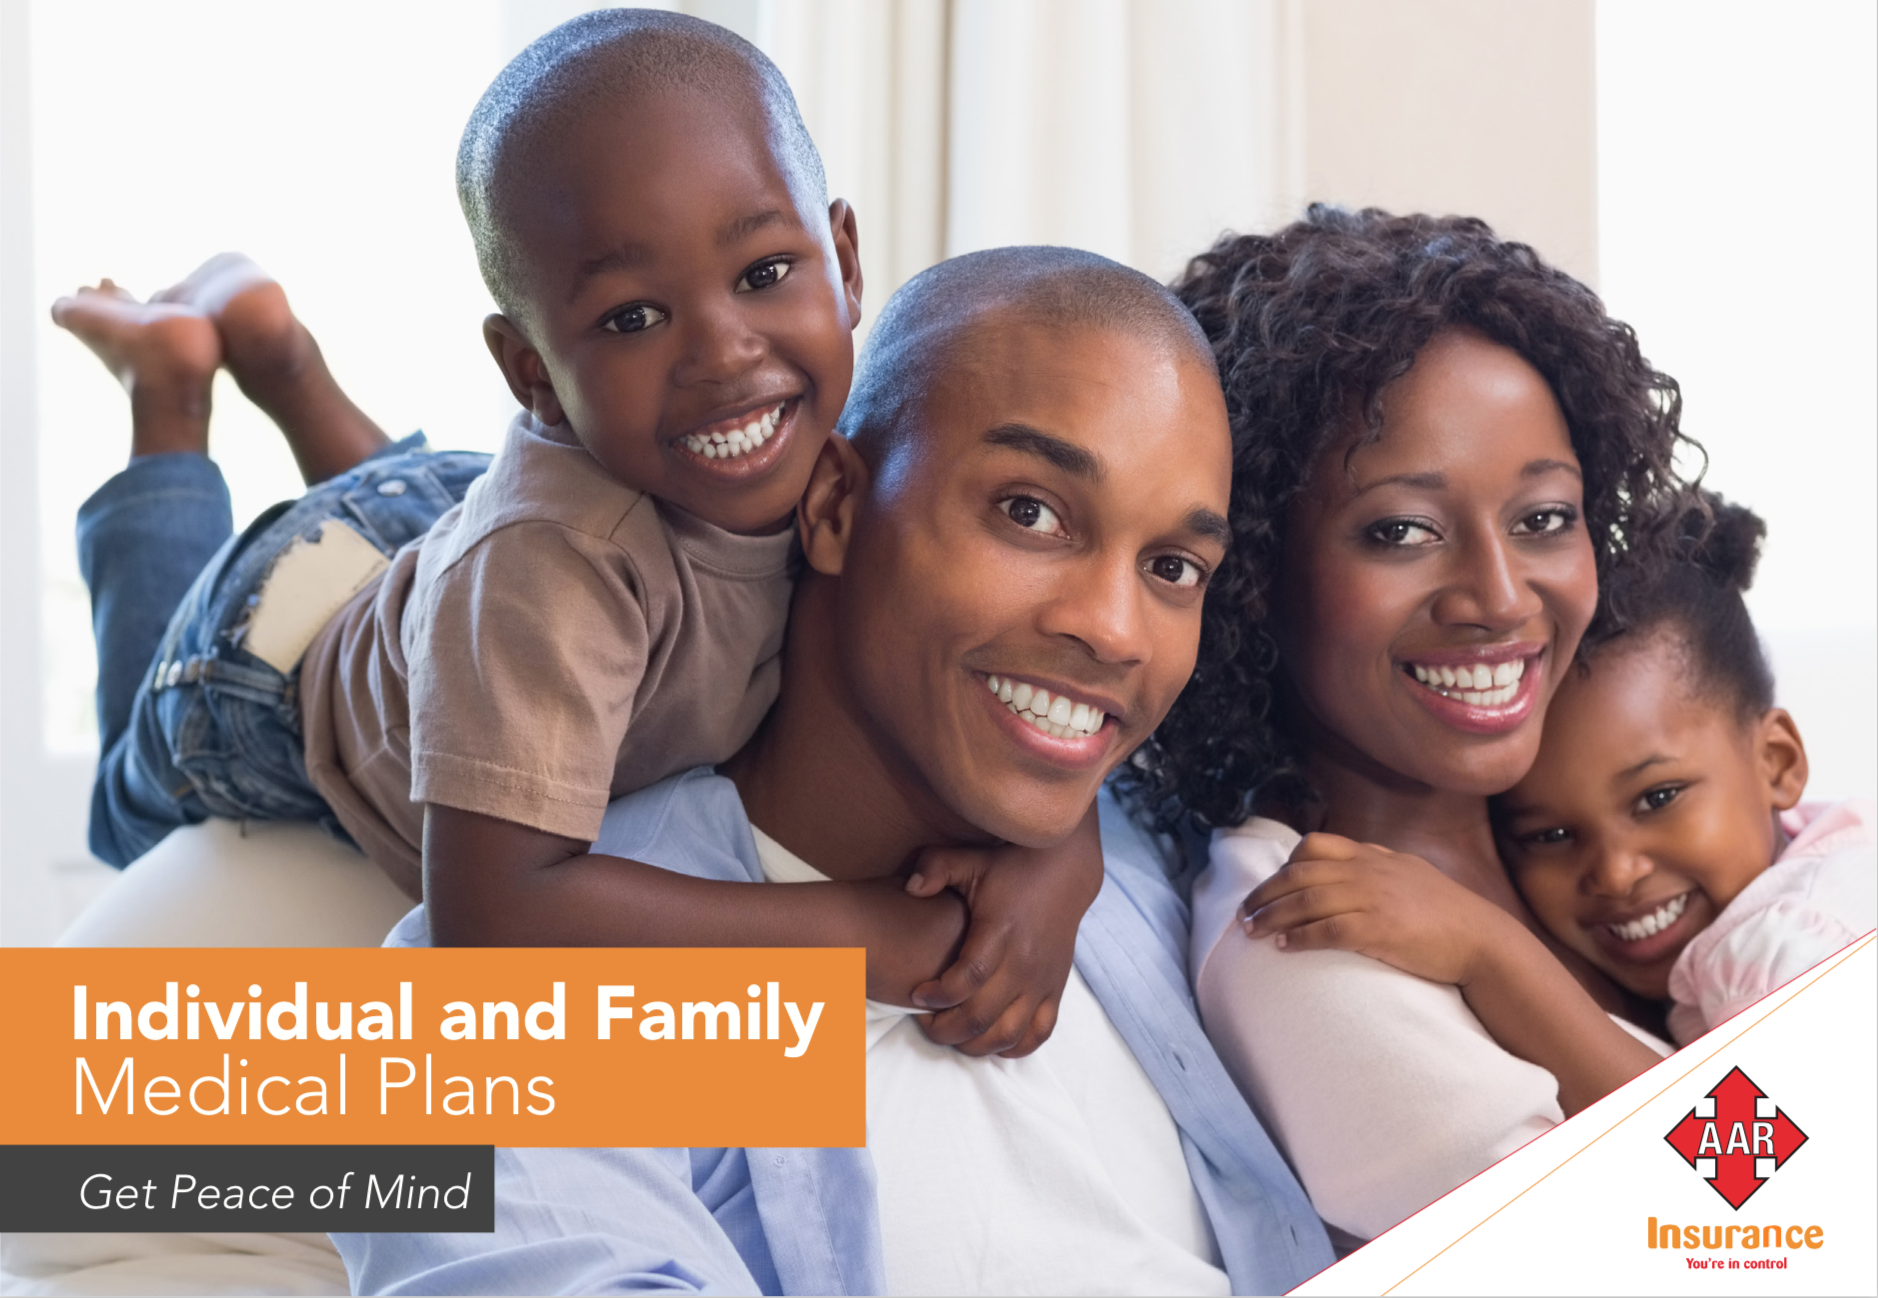 Individual and Family Medical Plans